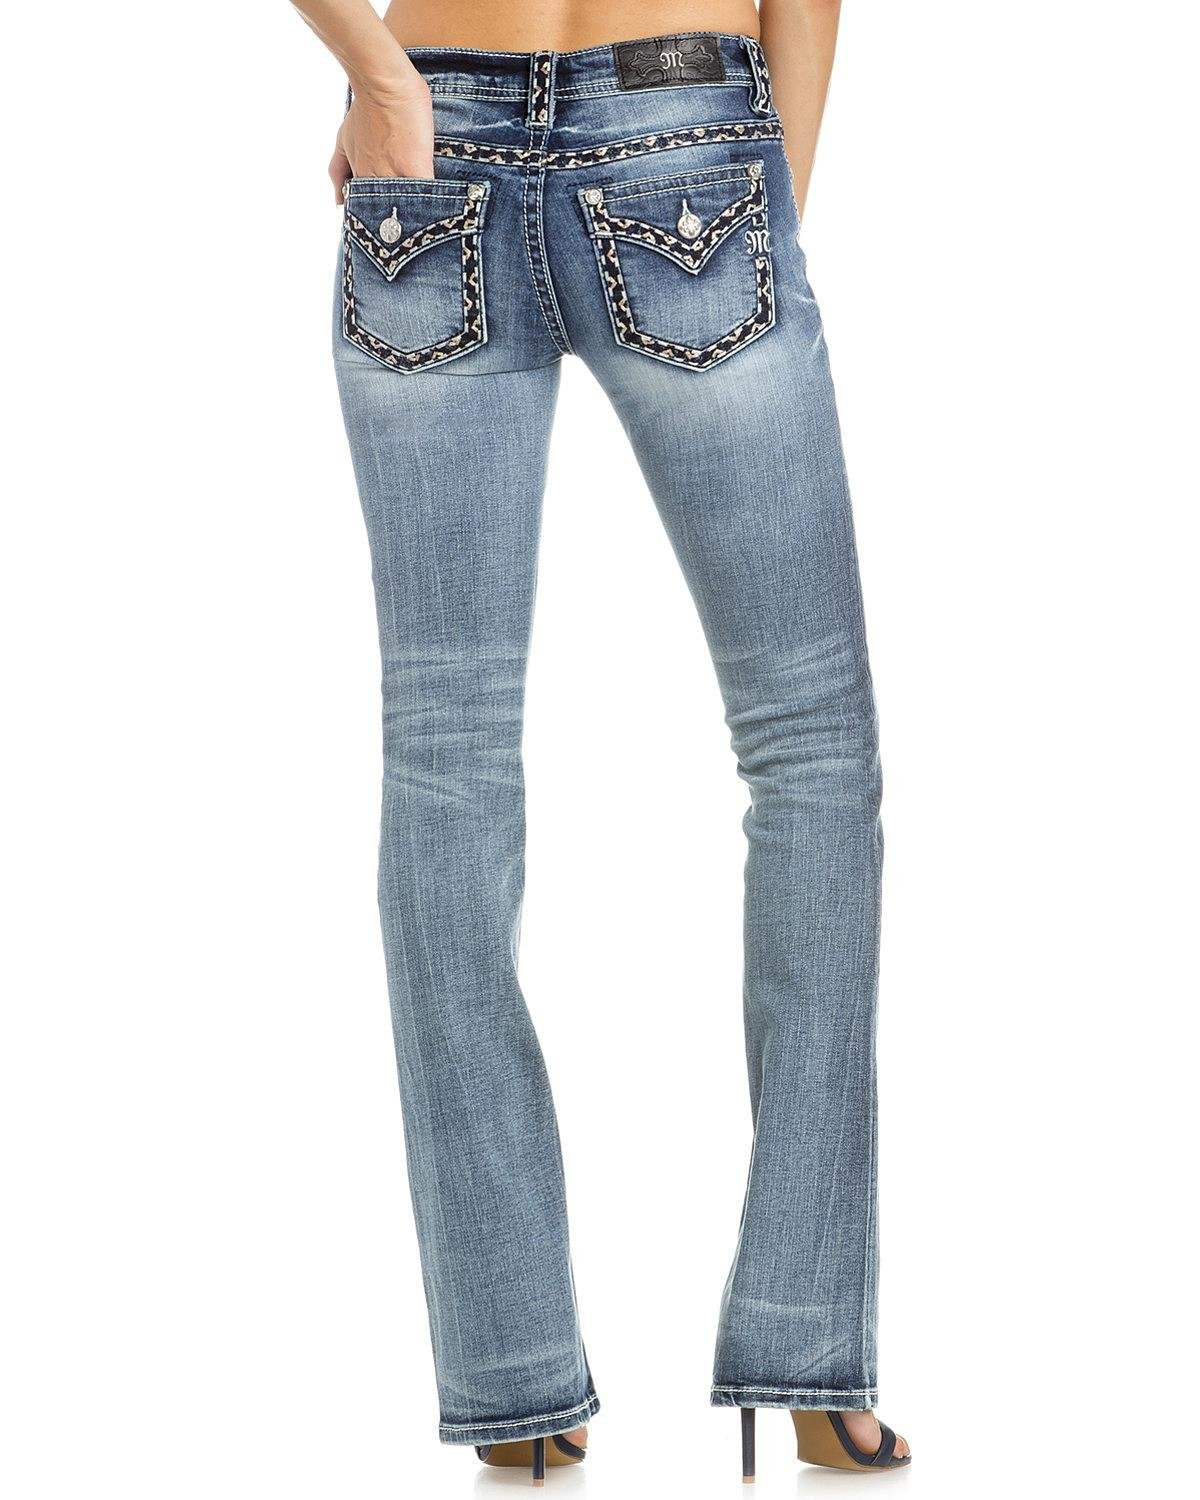 Miss Me Women's Heavy Stitched Boot Cut Jeans Indigo 33